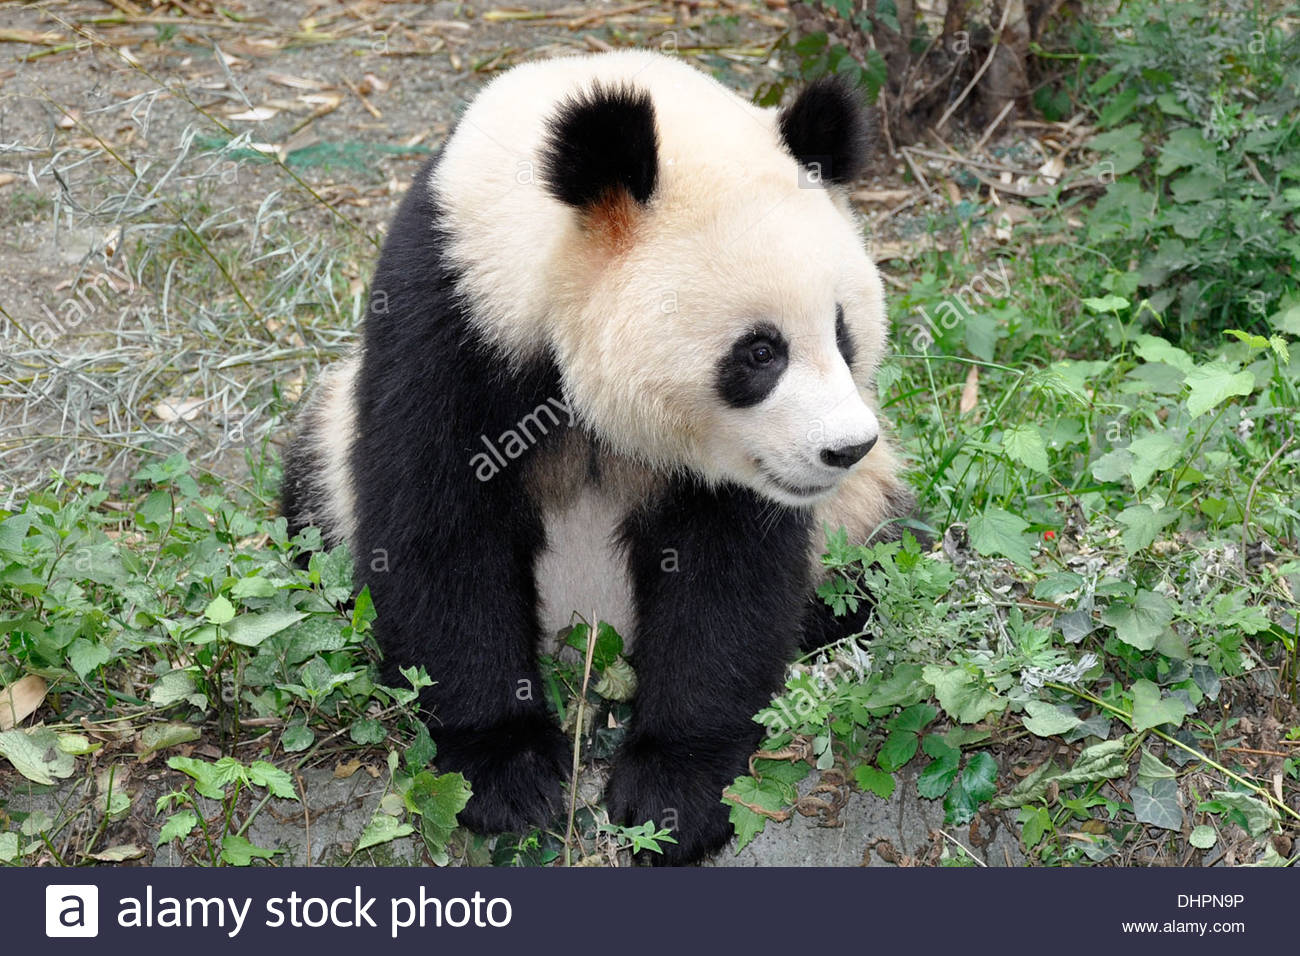 chengdu research base of giant panda breeding,sichuan,cina - Stock Image